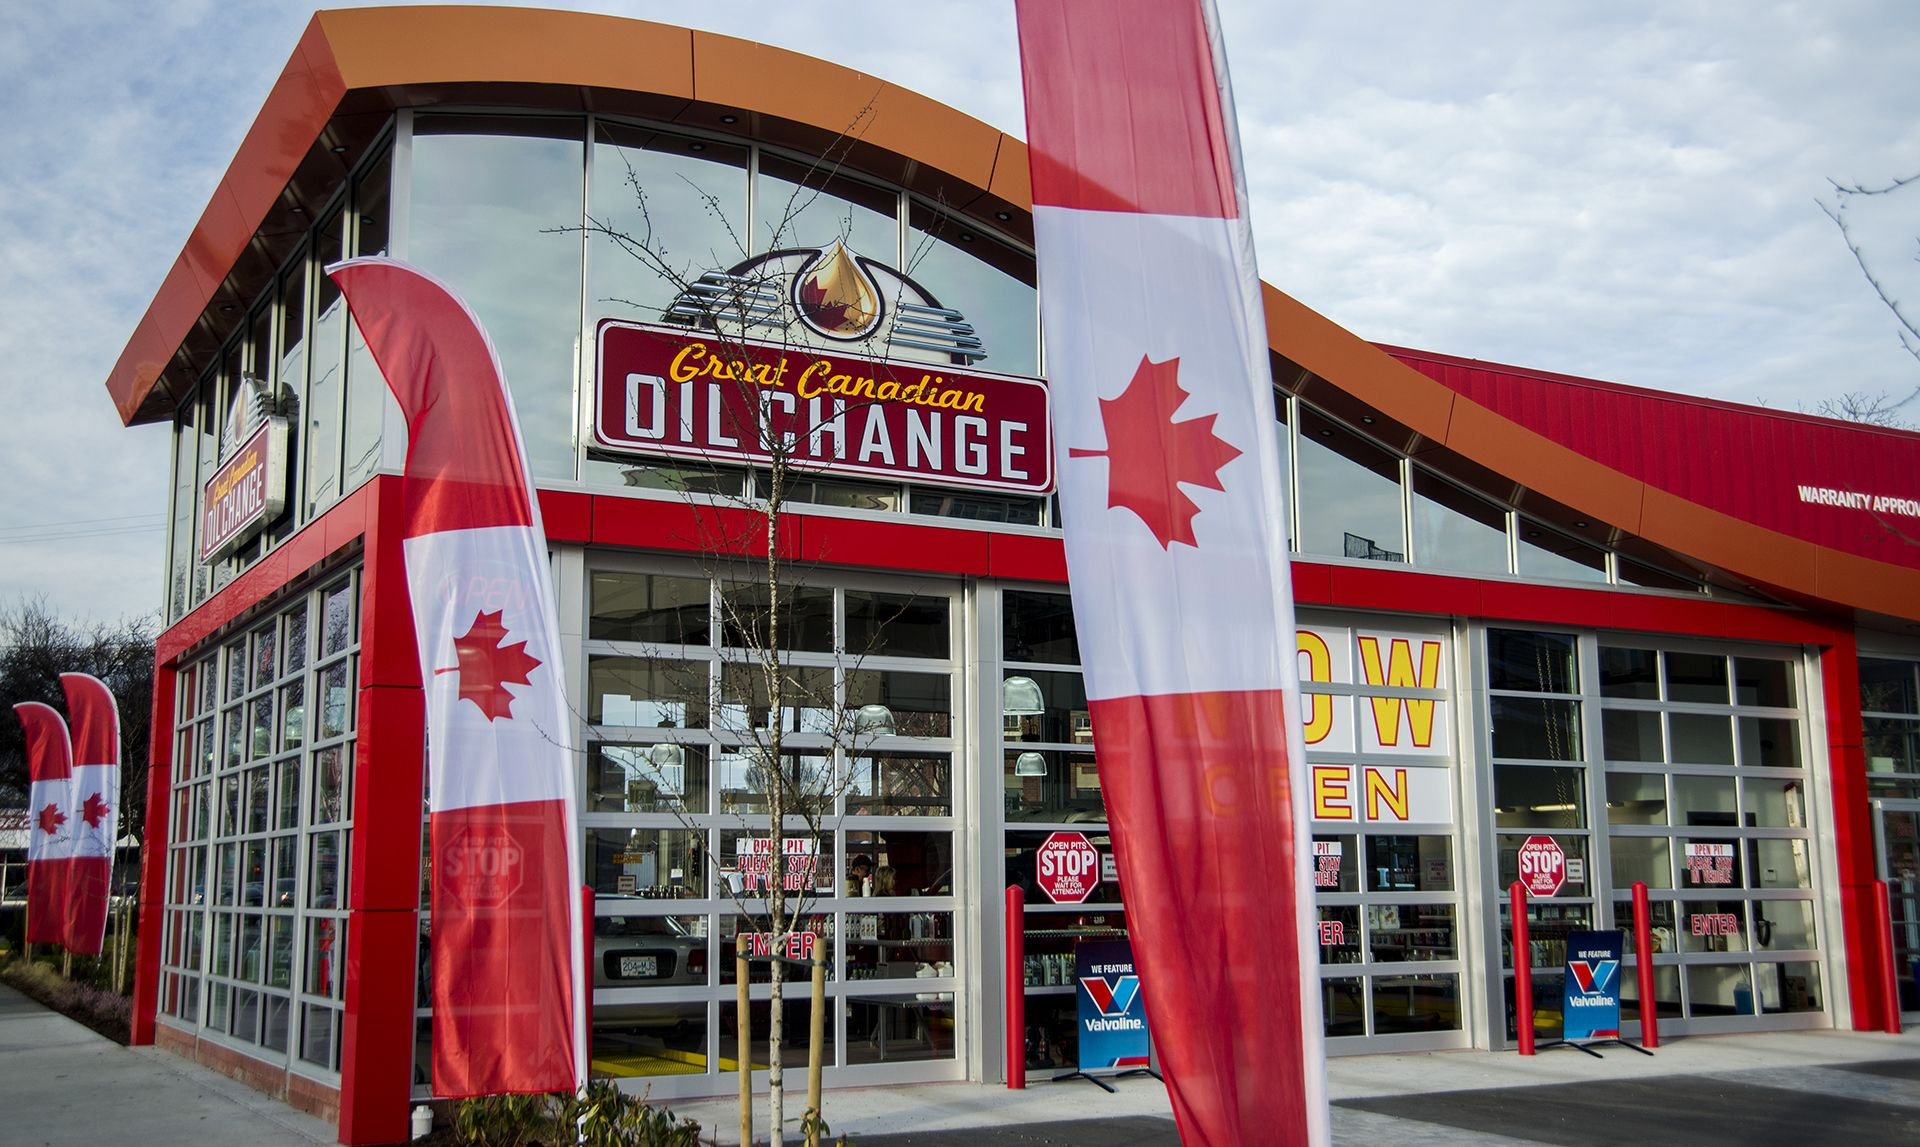 Great Canadian Oil Change on Douglas Now open